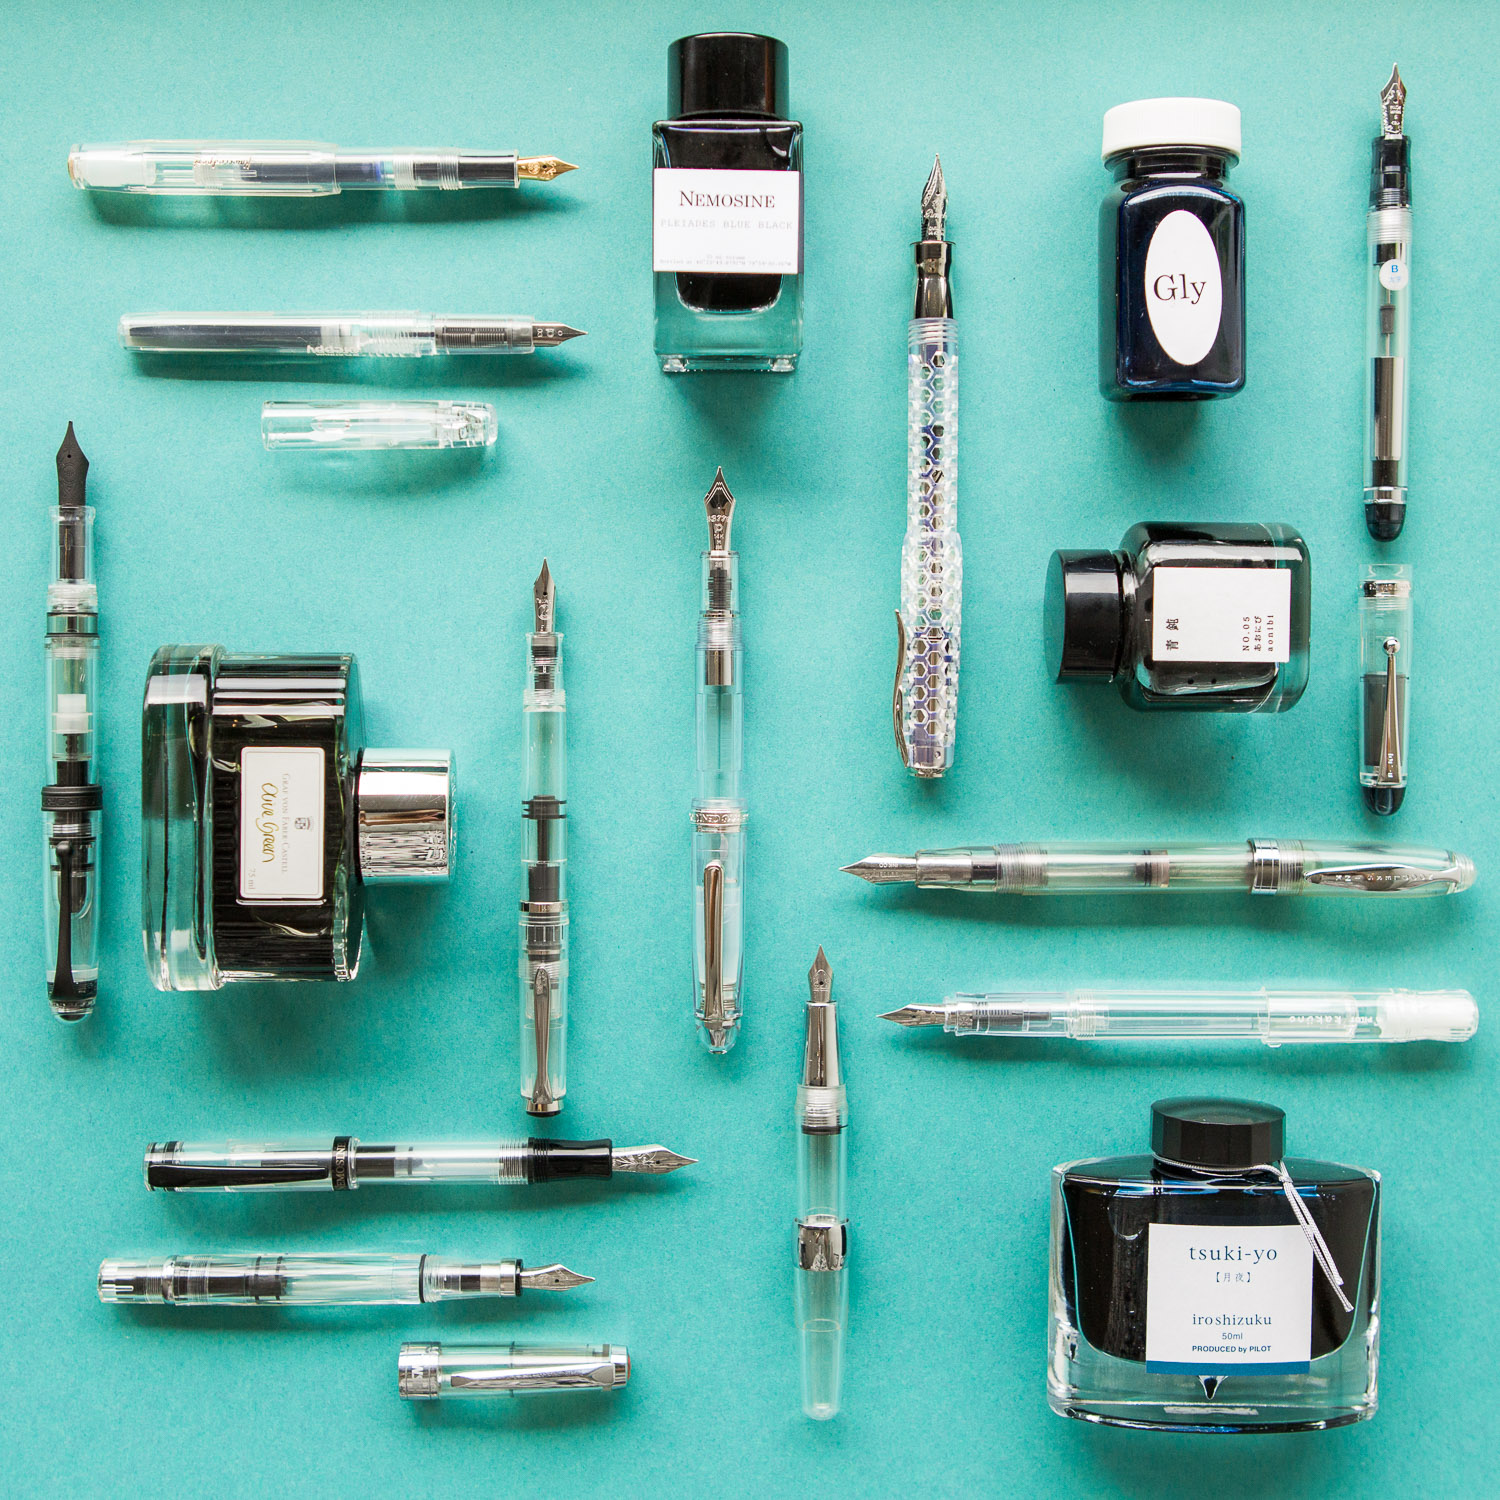 Arrangement of clear demonstrator fountain pens and ink.